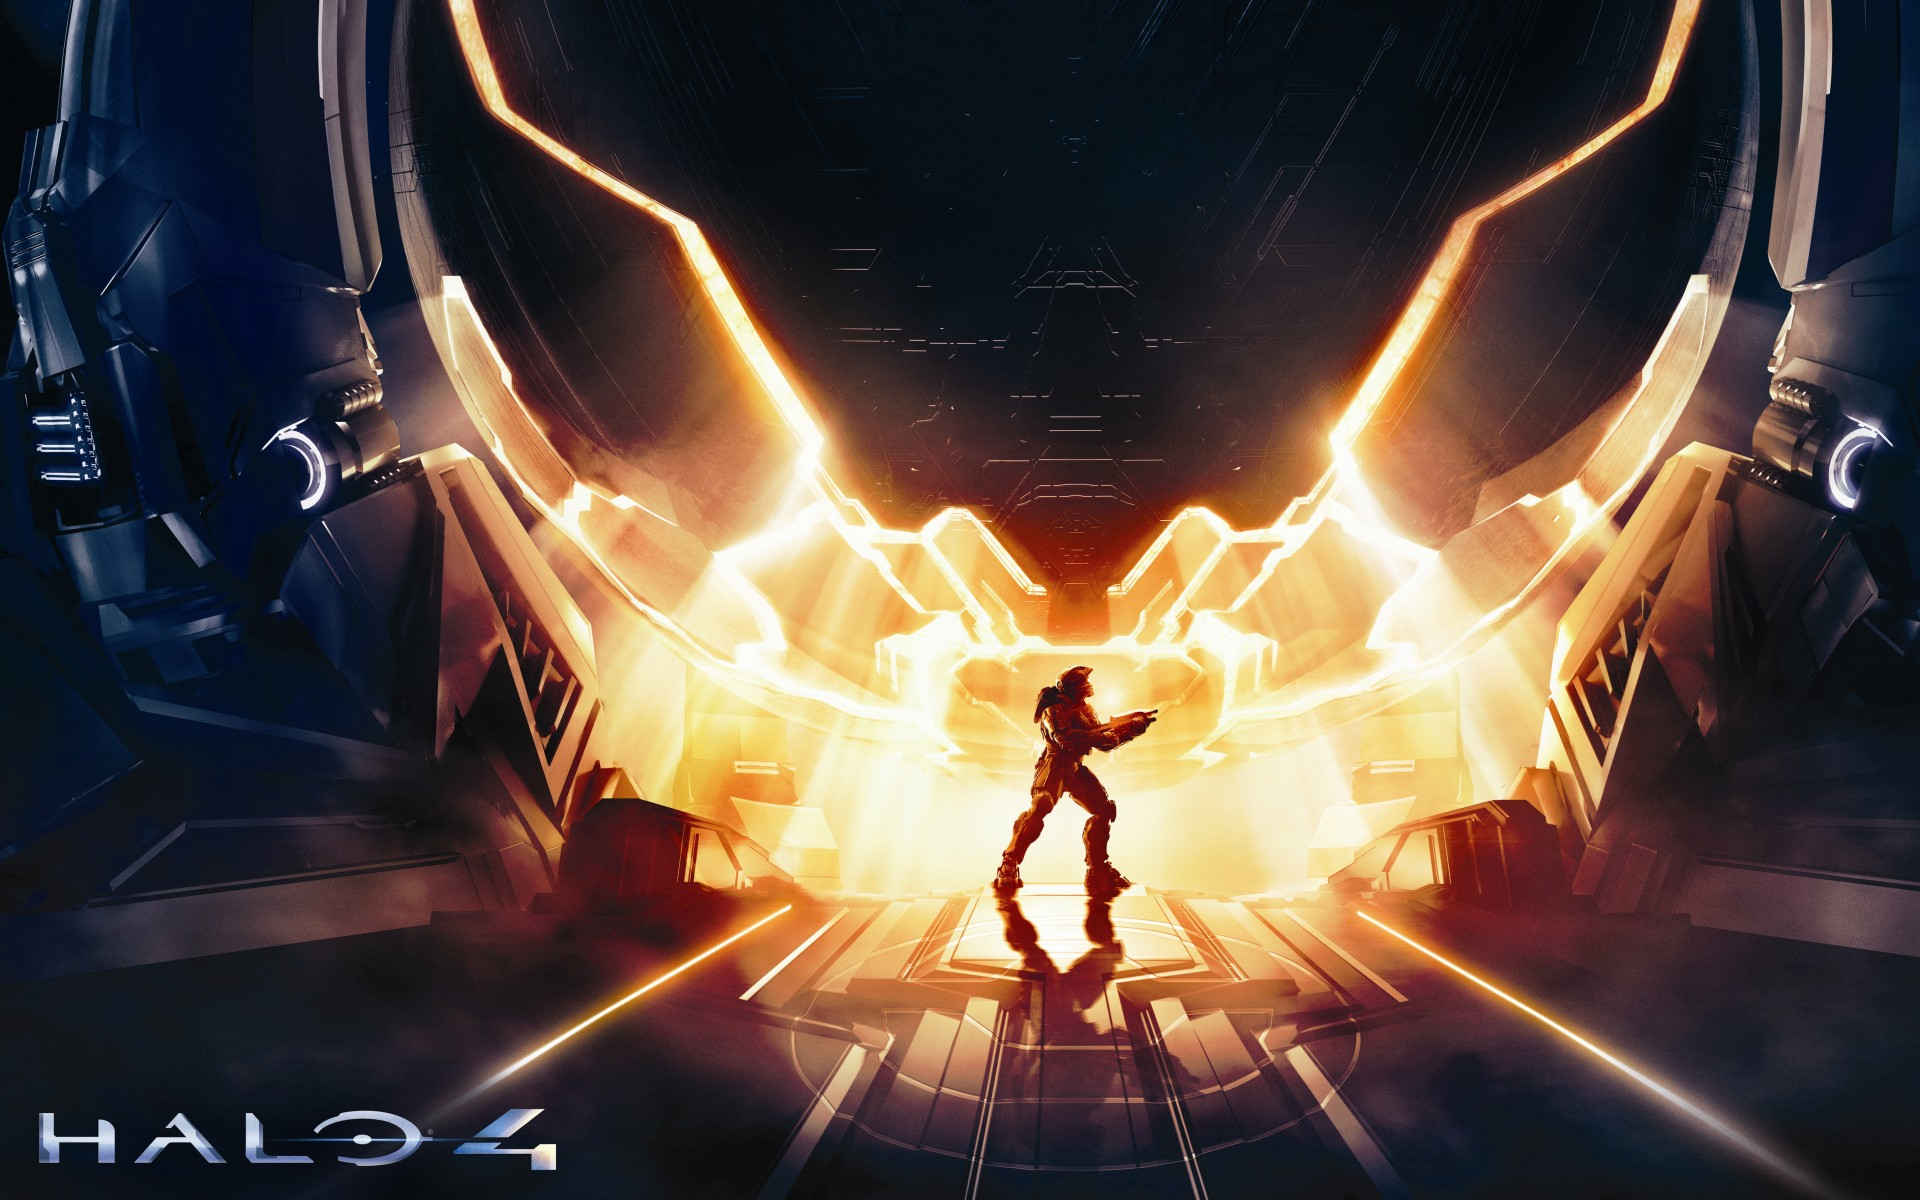 Halo 4 Xbox 360 Game Wallpapers HD Wallpapers ID 11451